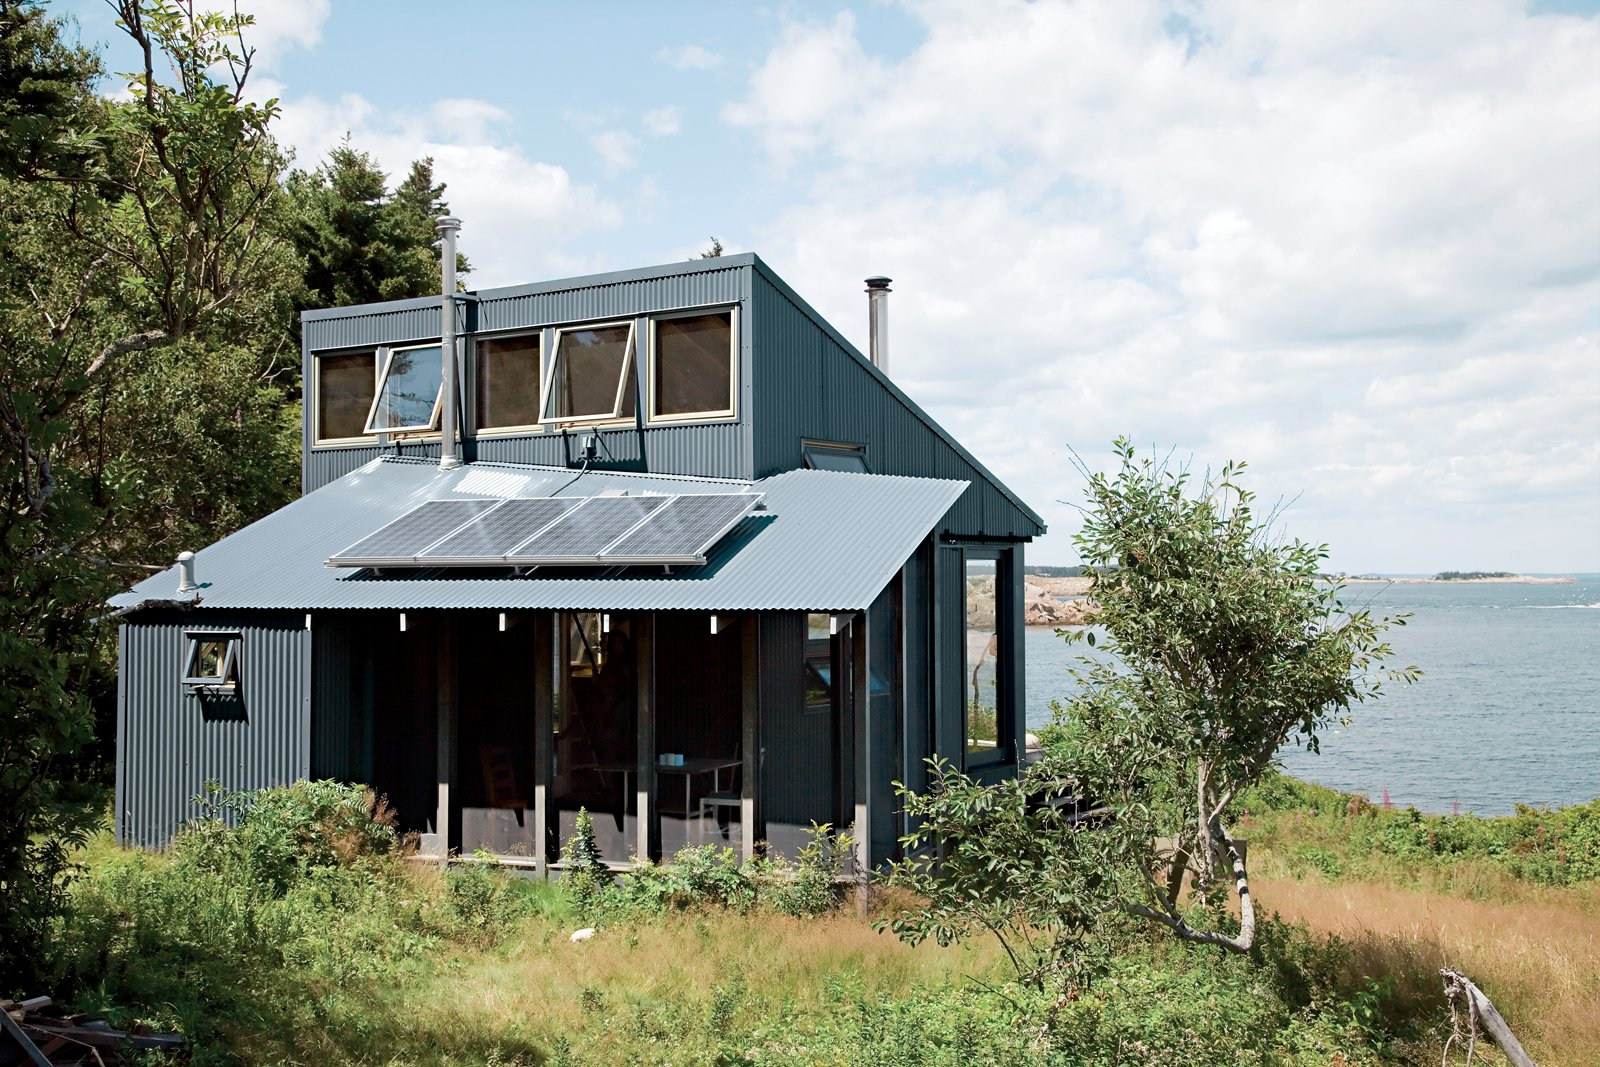 Elegant A Tiny Cabin Is This Writeru0027s Off The Grid Getaway